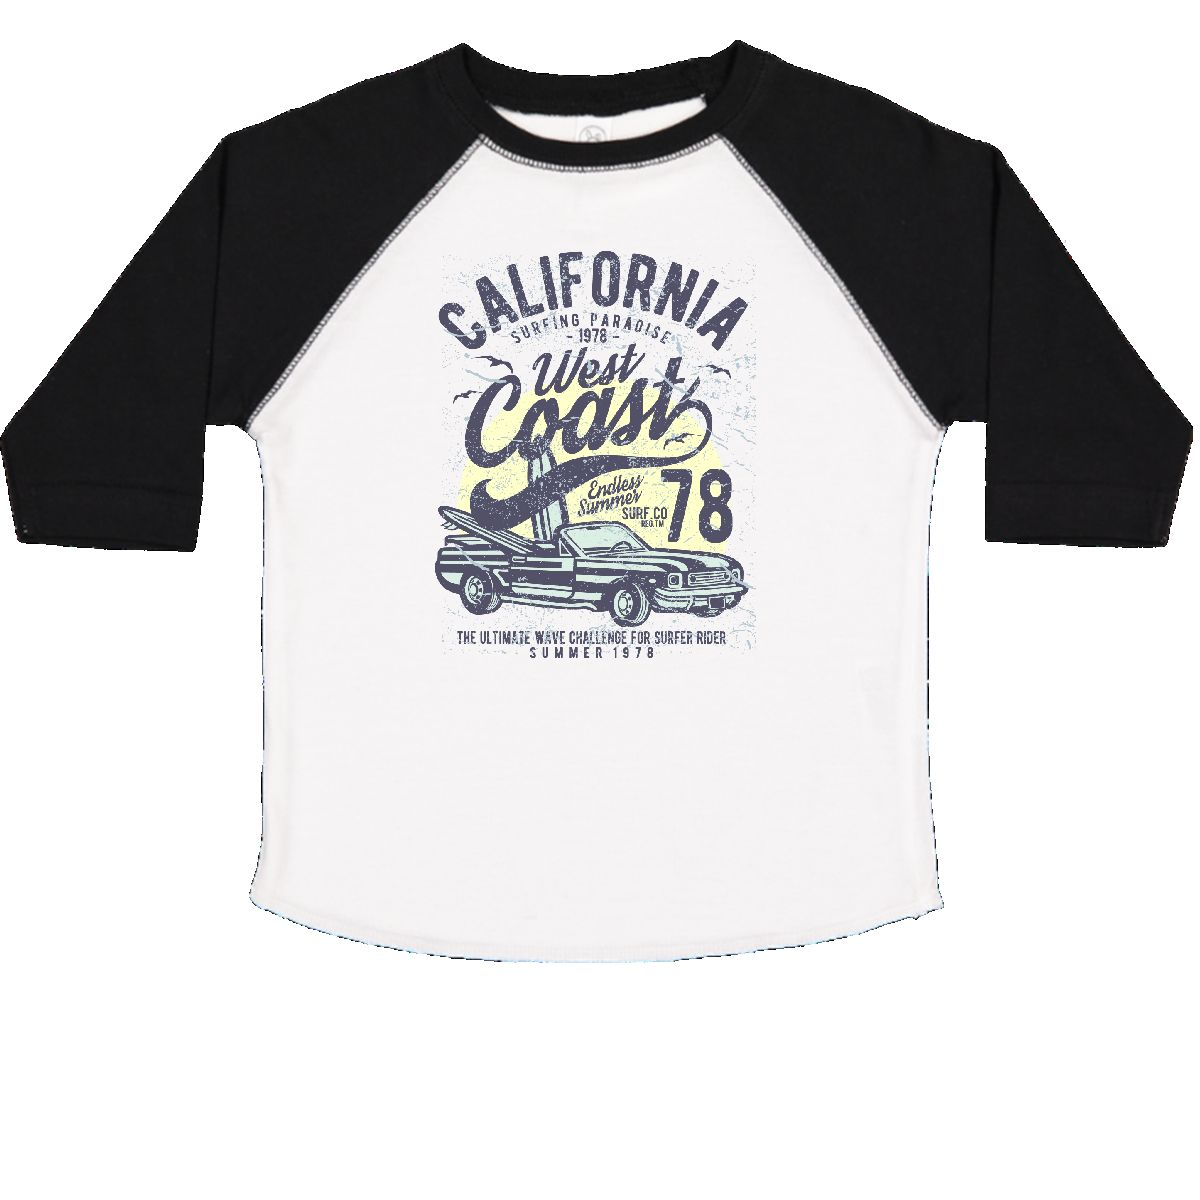 0b910089d Inktastic California West Coast Toddler T-Shirt Surfer Surfing ...